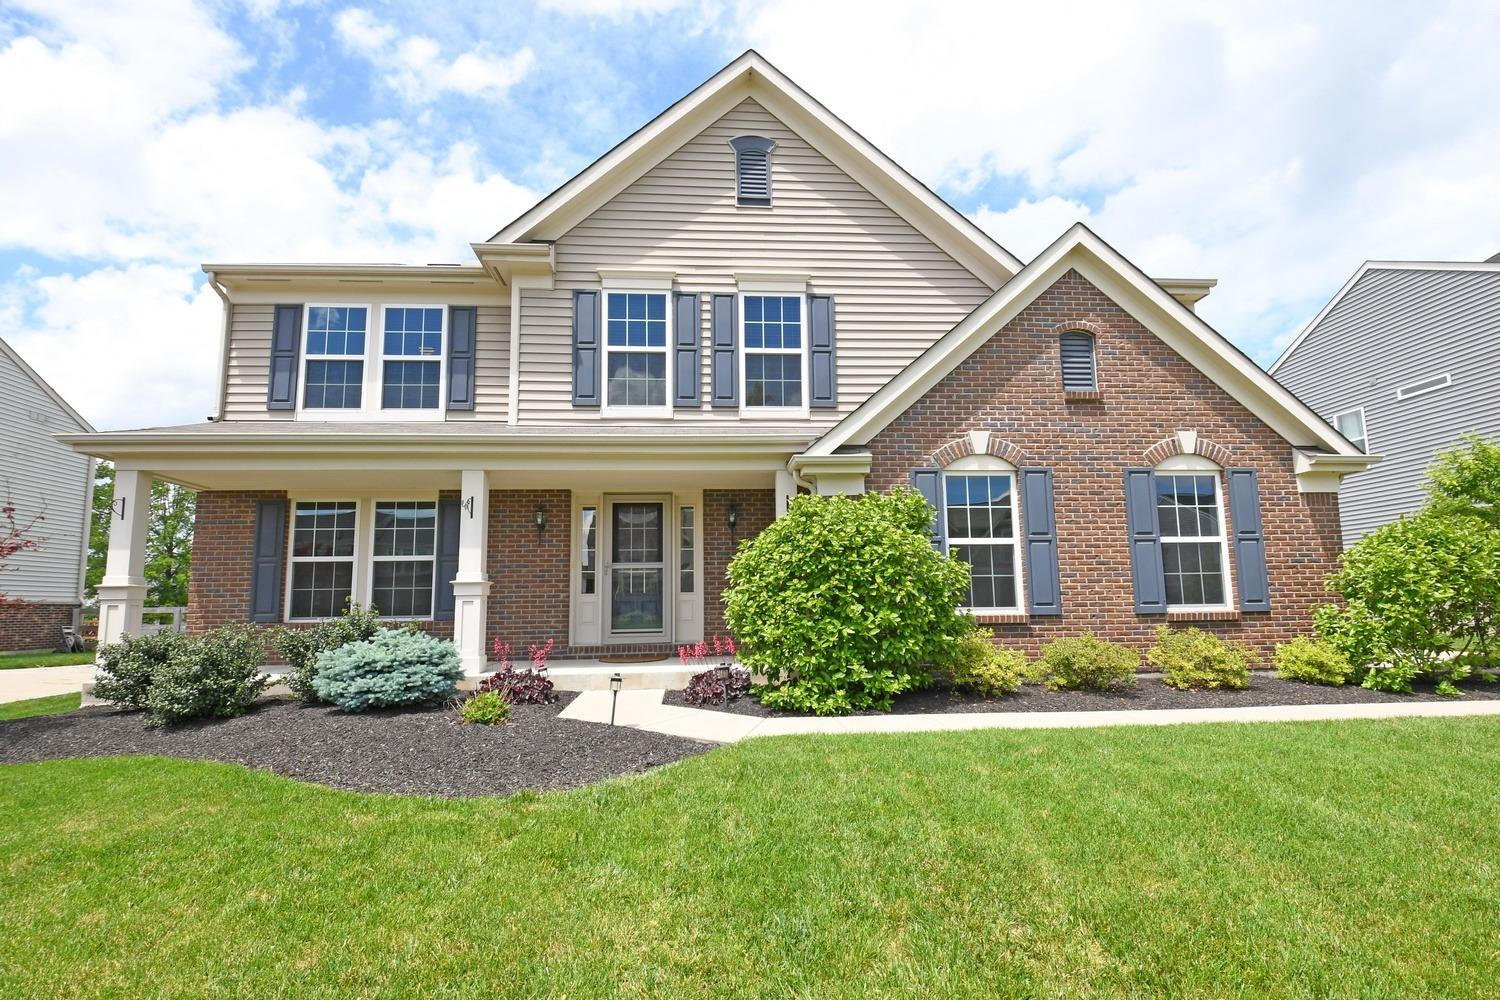 Property for sale at 7155 Birkdale Drive, Hamilton Twp,  Ohio 45039